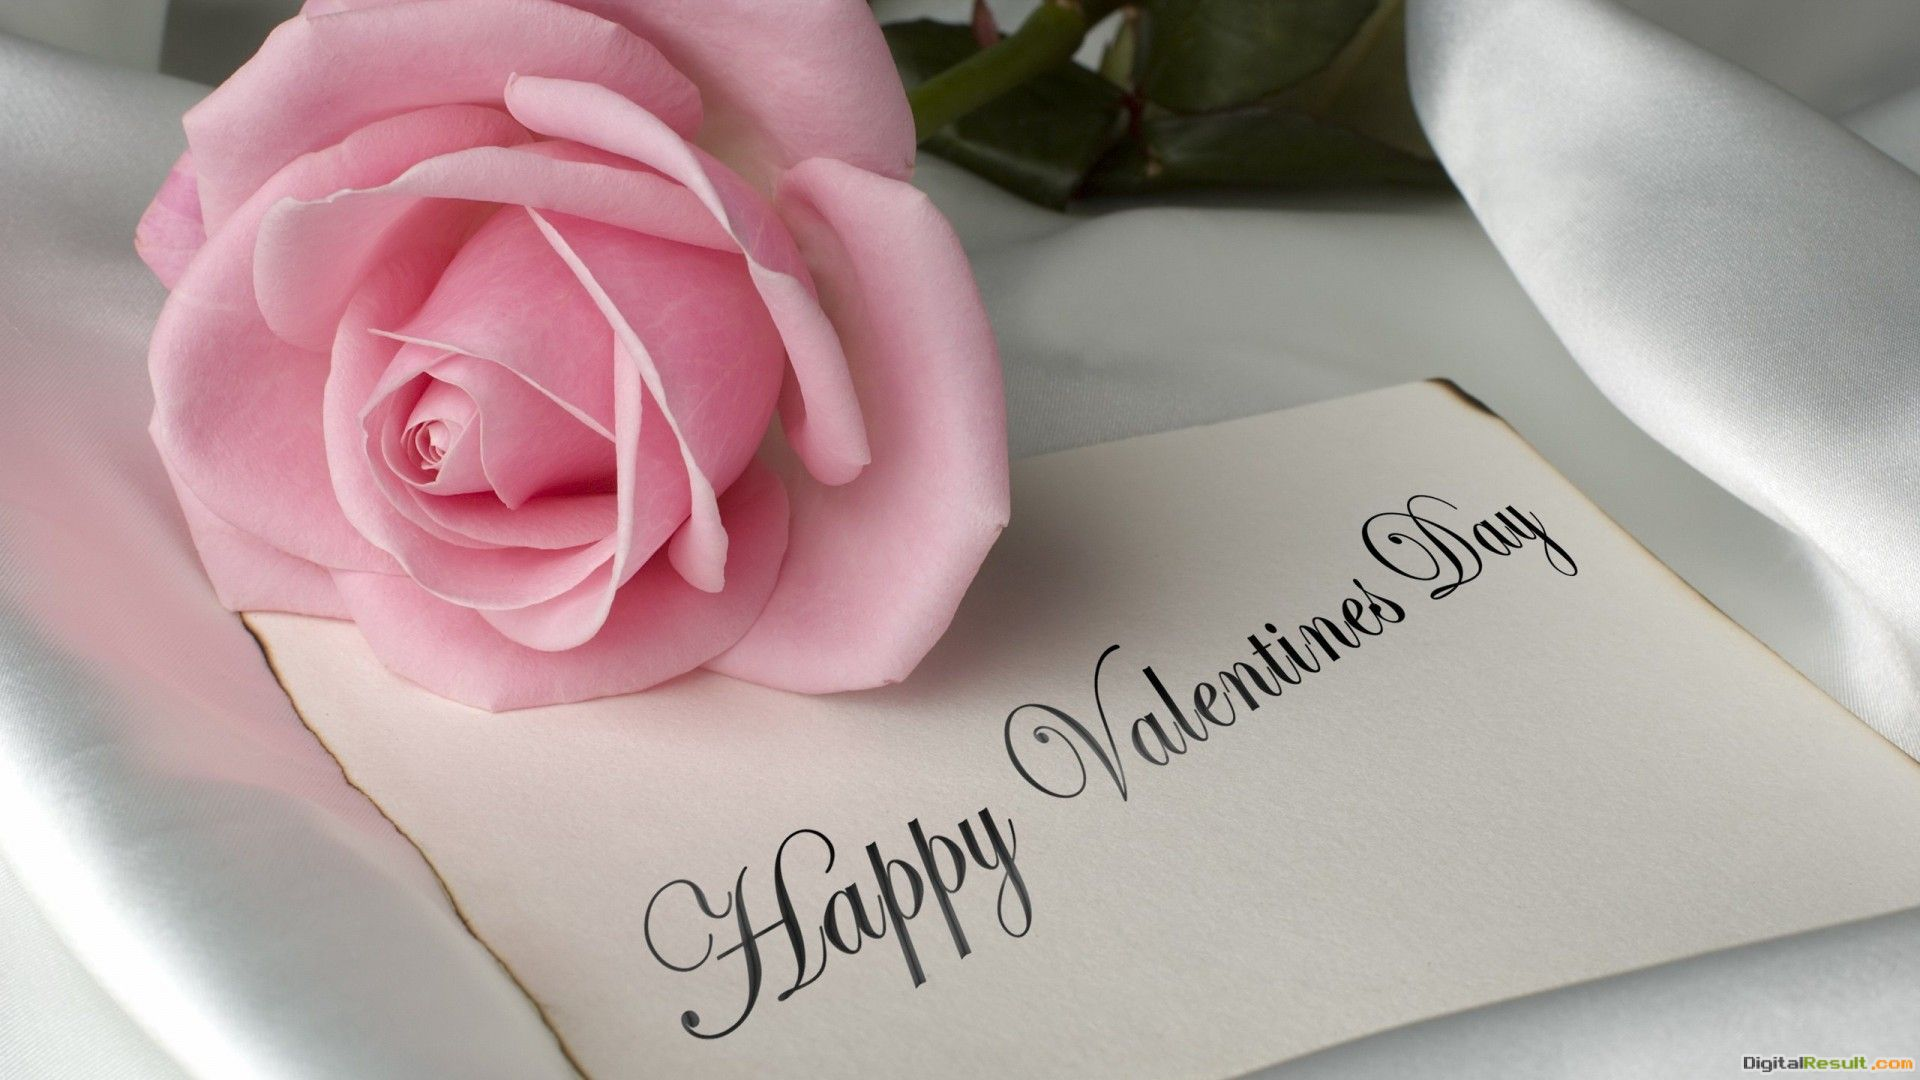 happy valentines day cards wallpaper Wallpaper 663